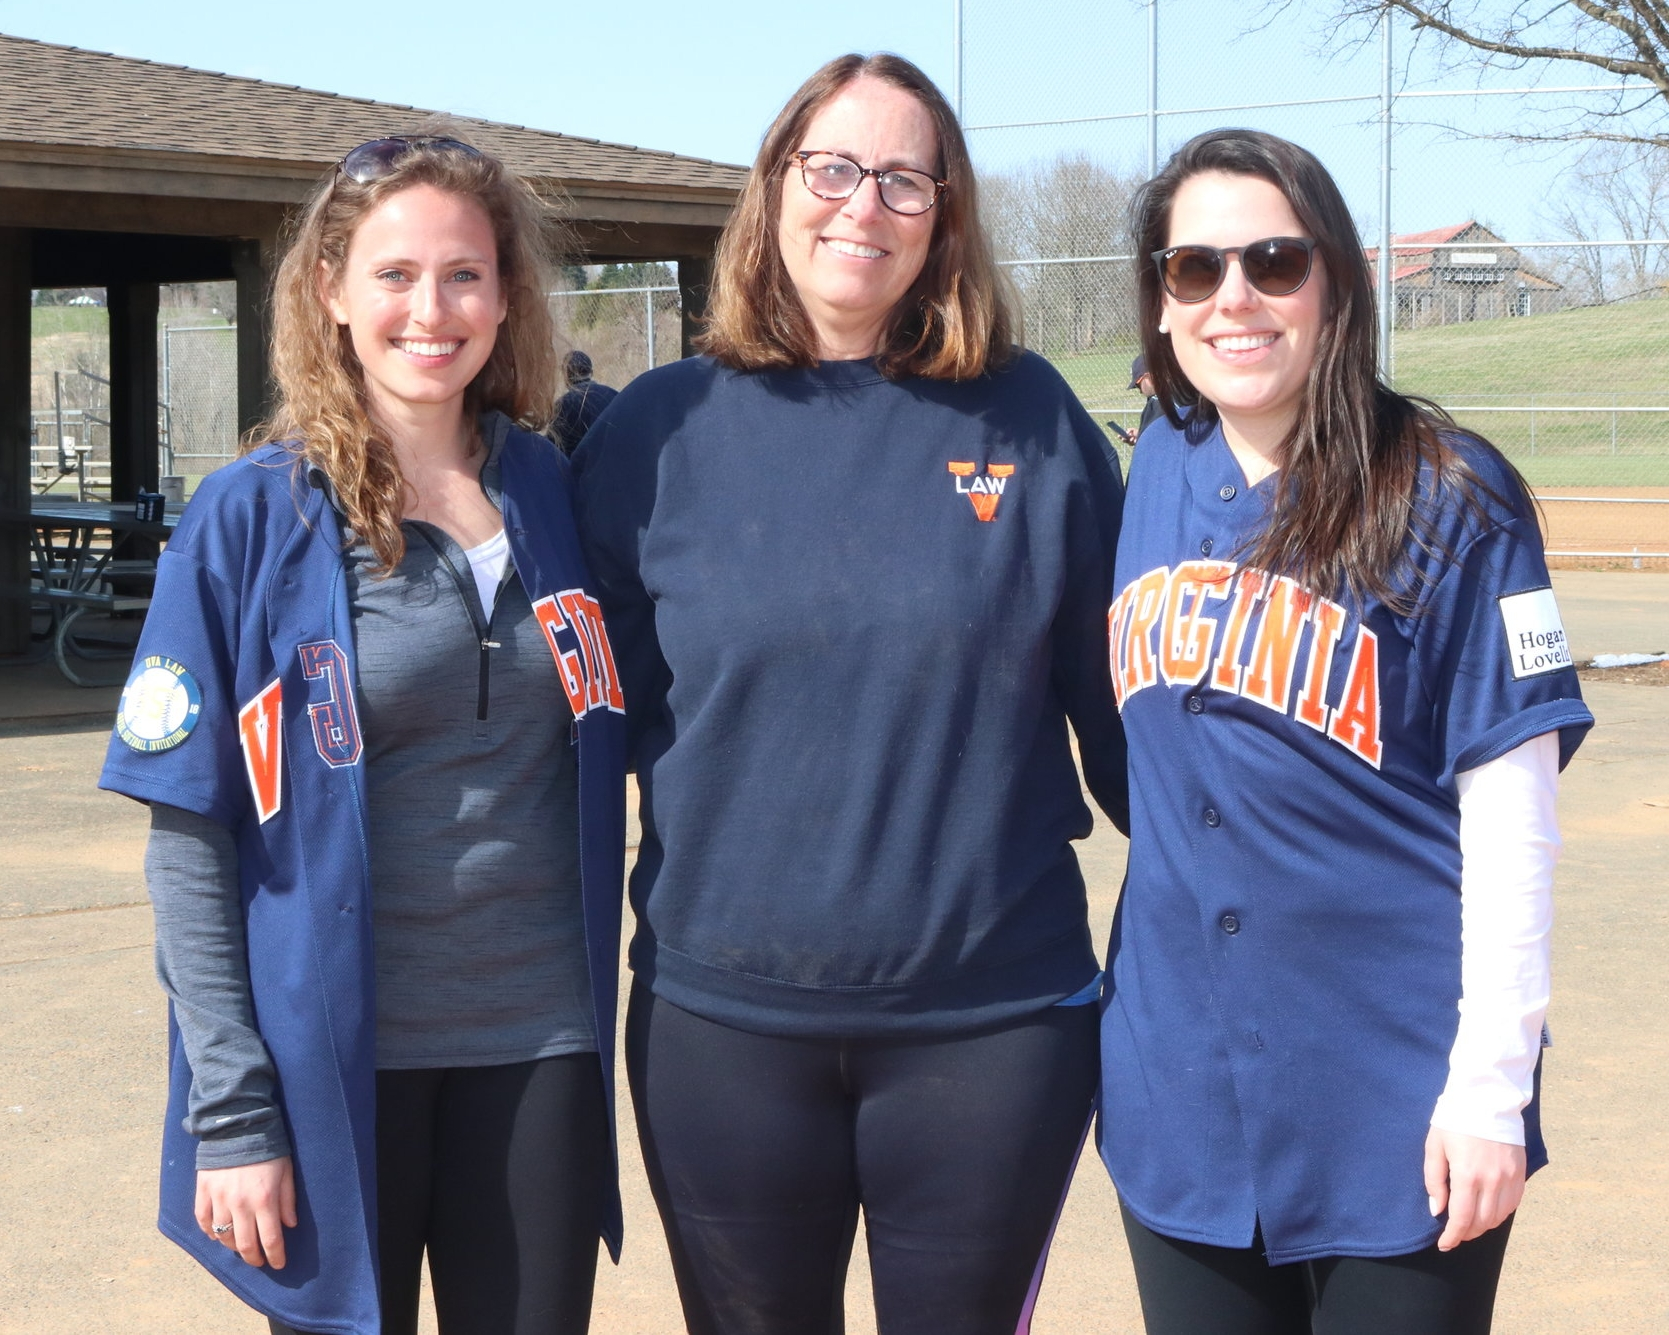 Tournament organizers Dascher Pasco '18 with Laura Gregory '18 and original softball tournament organizer Mary Wood Schmalzl '84. Photo courtesy Mary Wood Schmalzl.